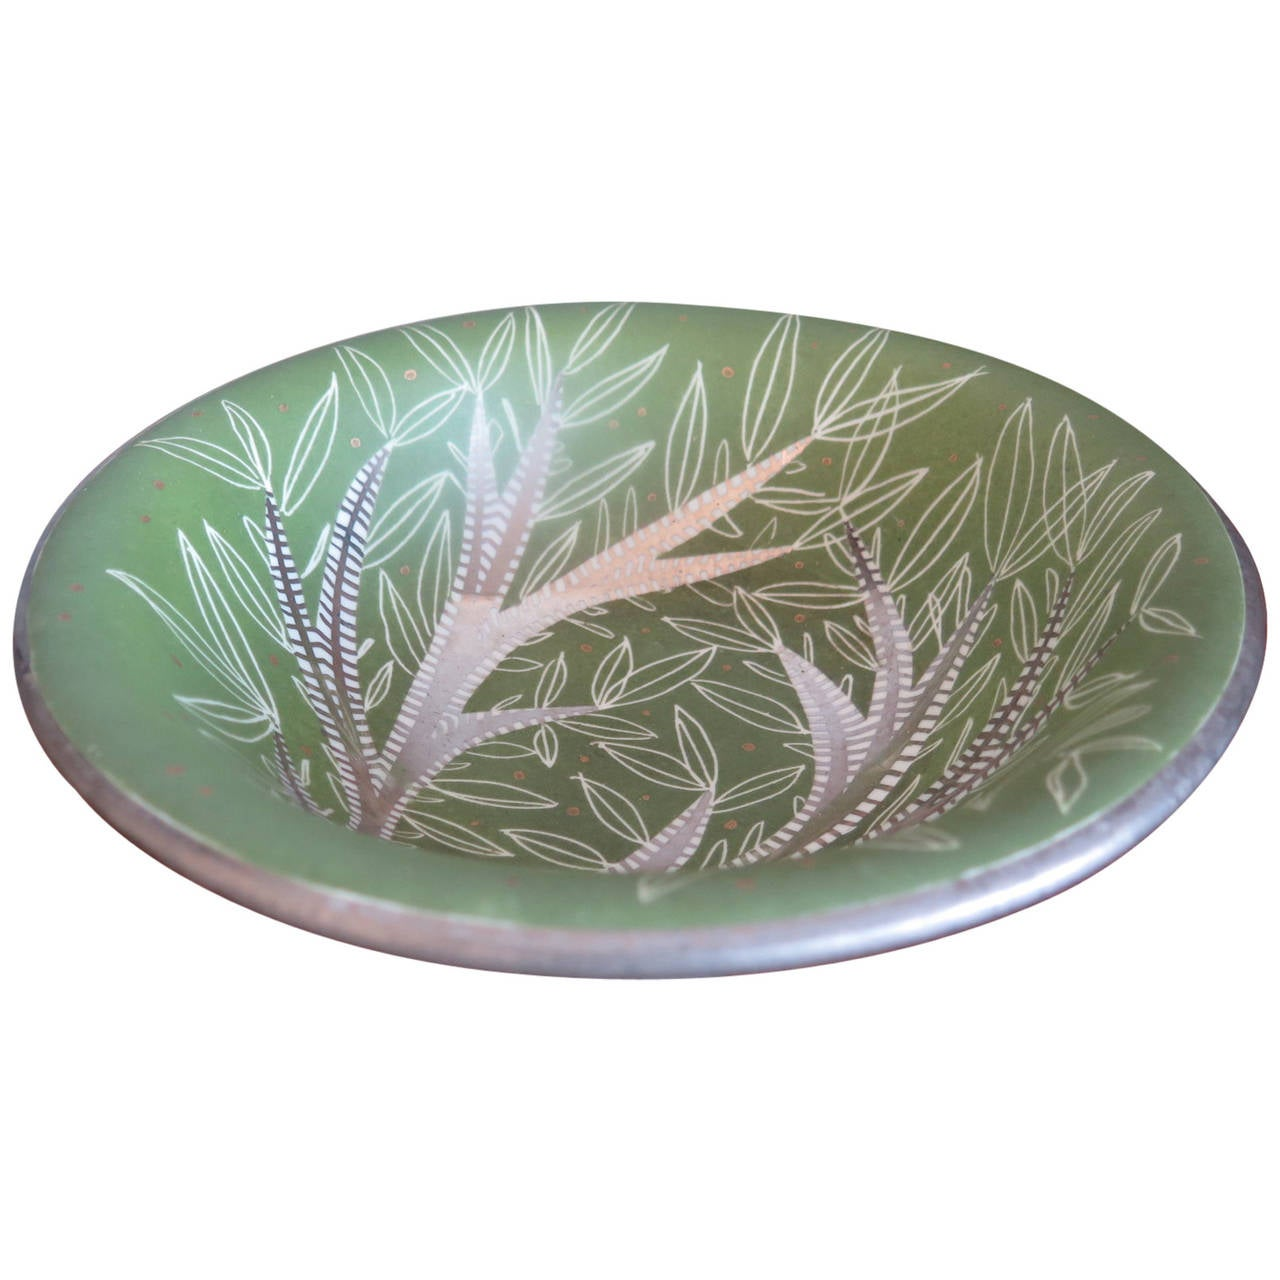 Waylande Gregory Ceramic Bowl For Sale